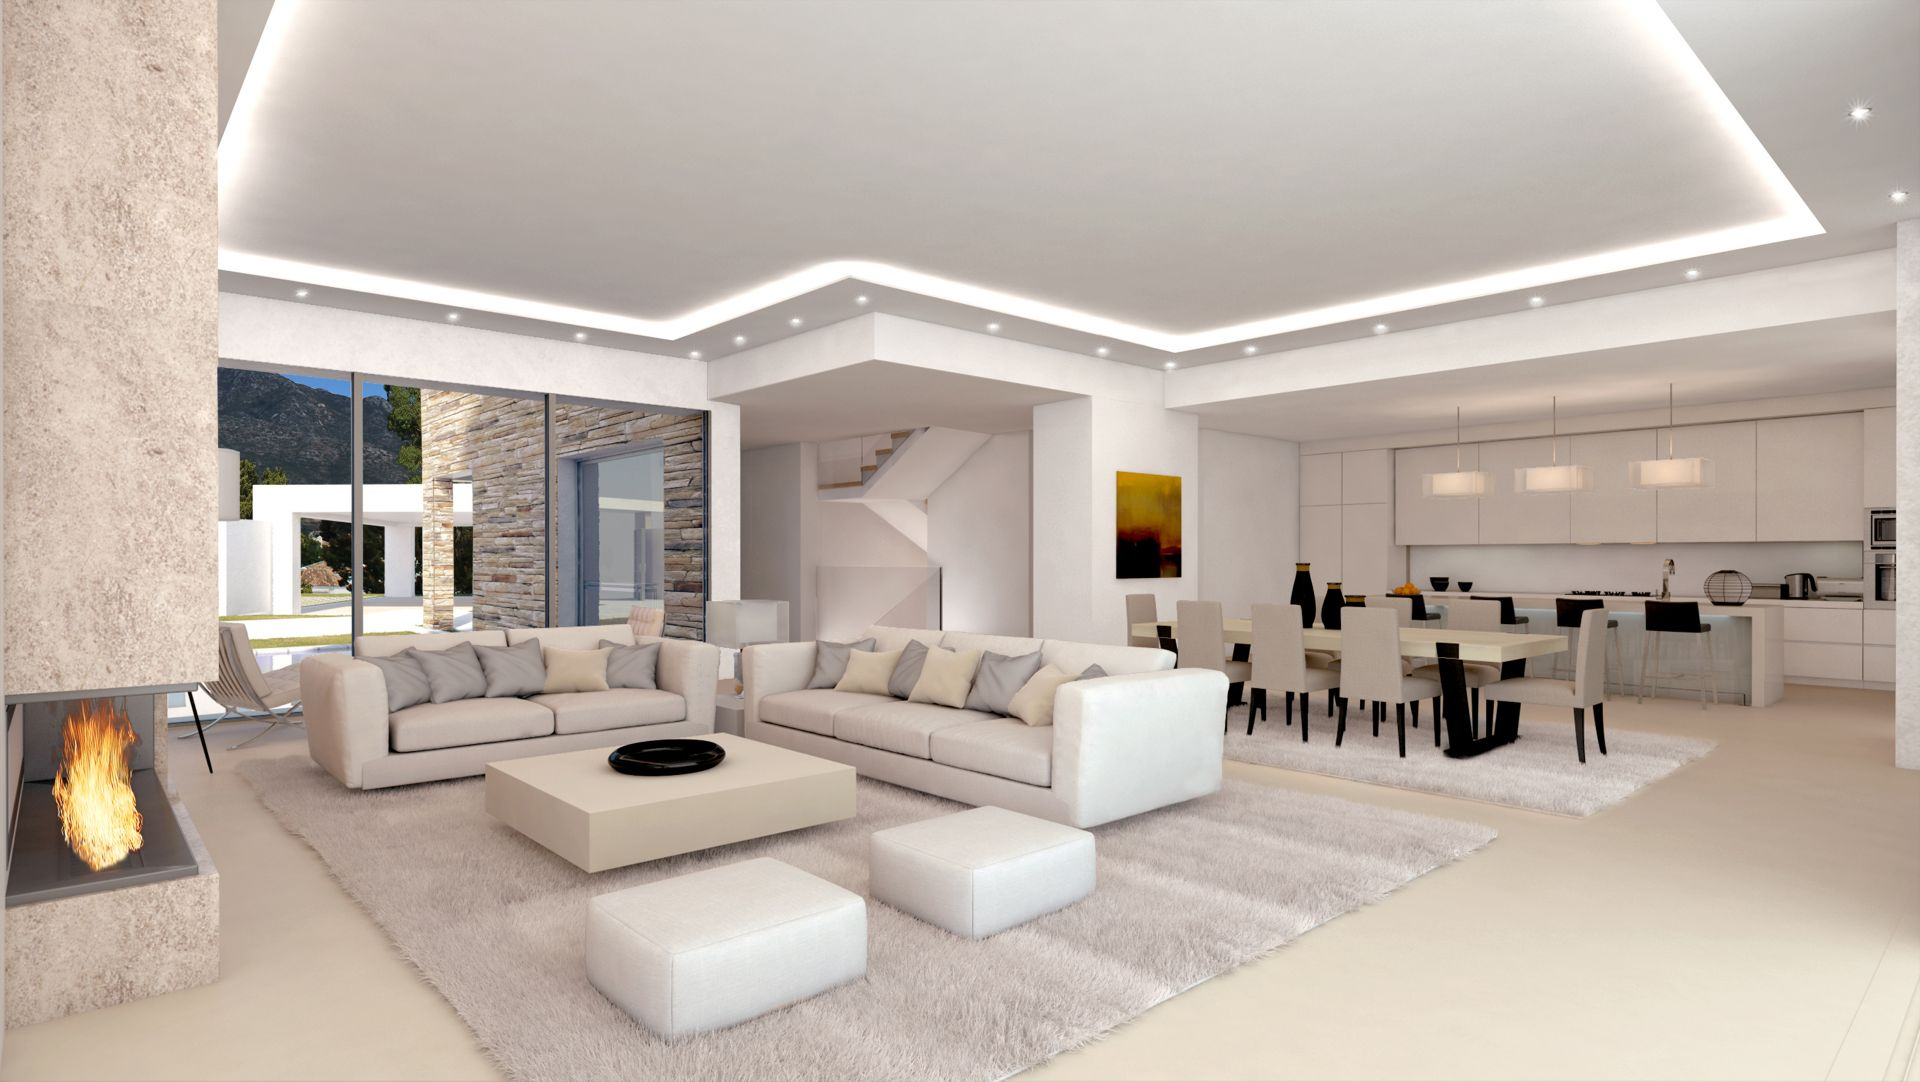 Modern Villas In Best Location With Sea Views For Sale In Marbella